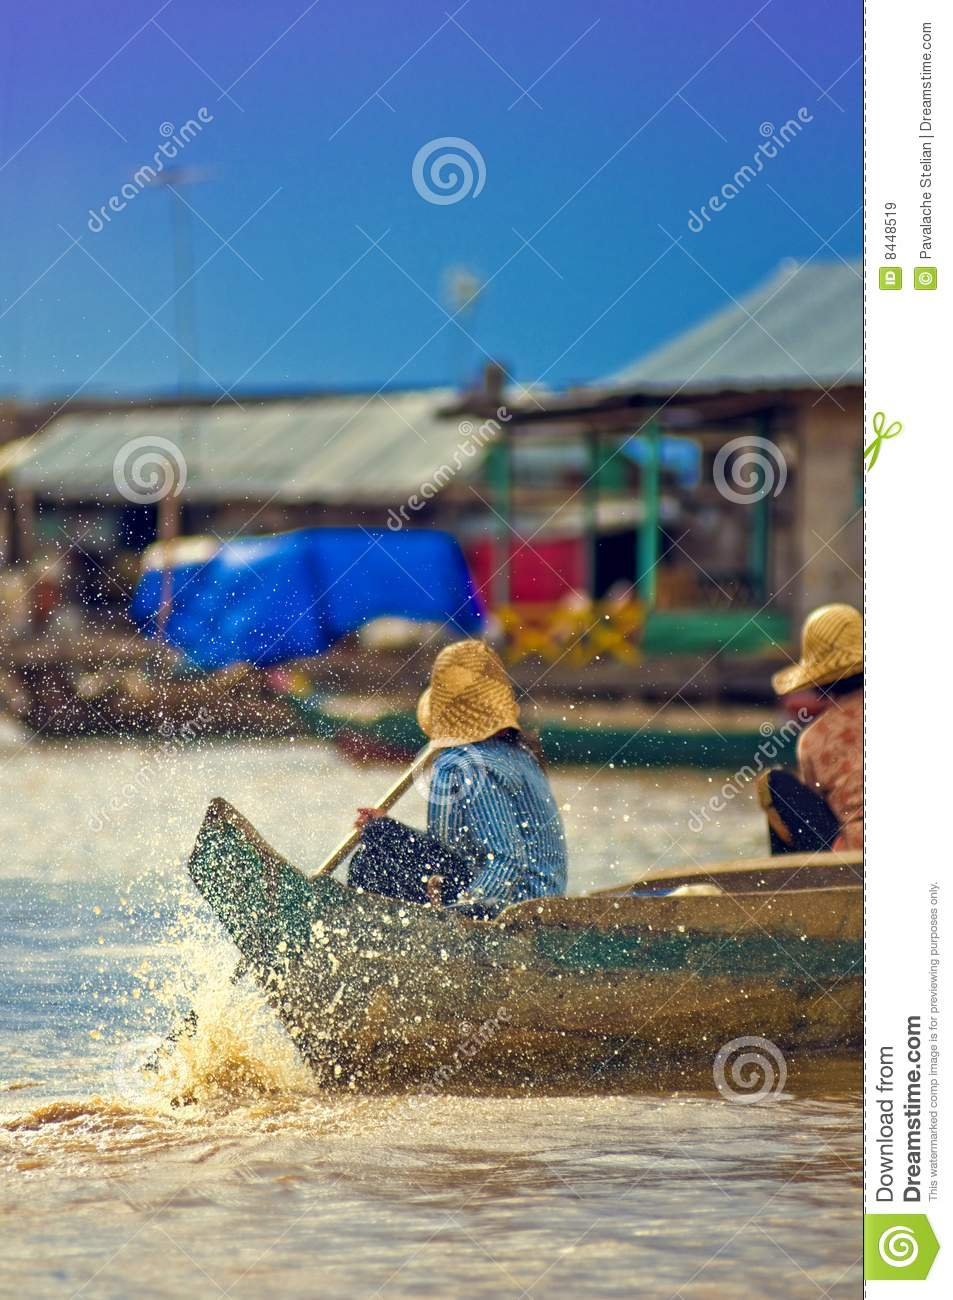 People from Cambodia (Tonle Sap lake)